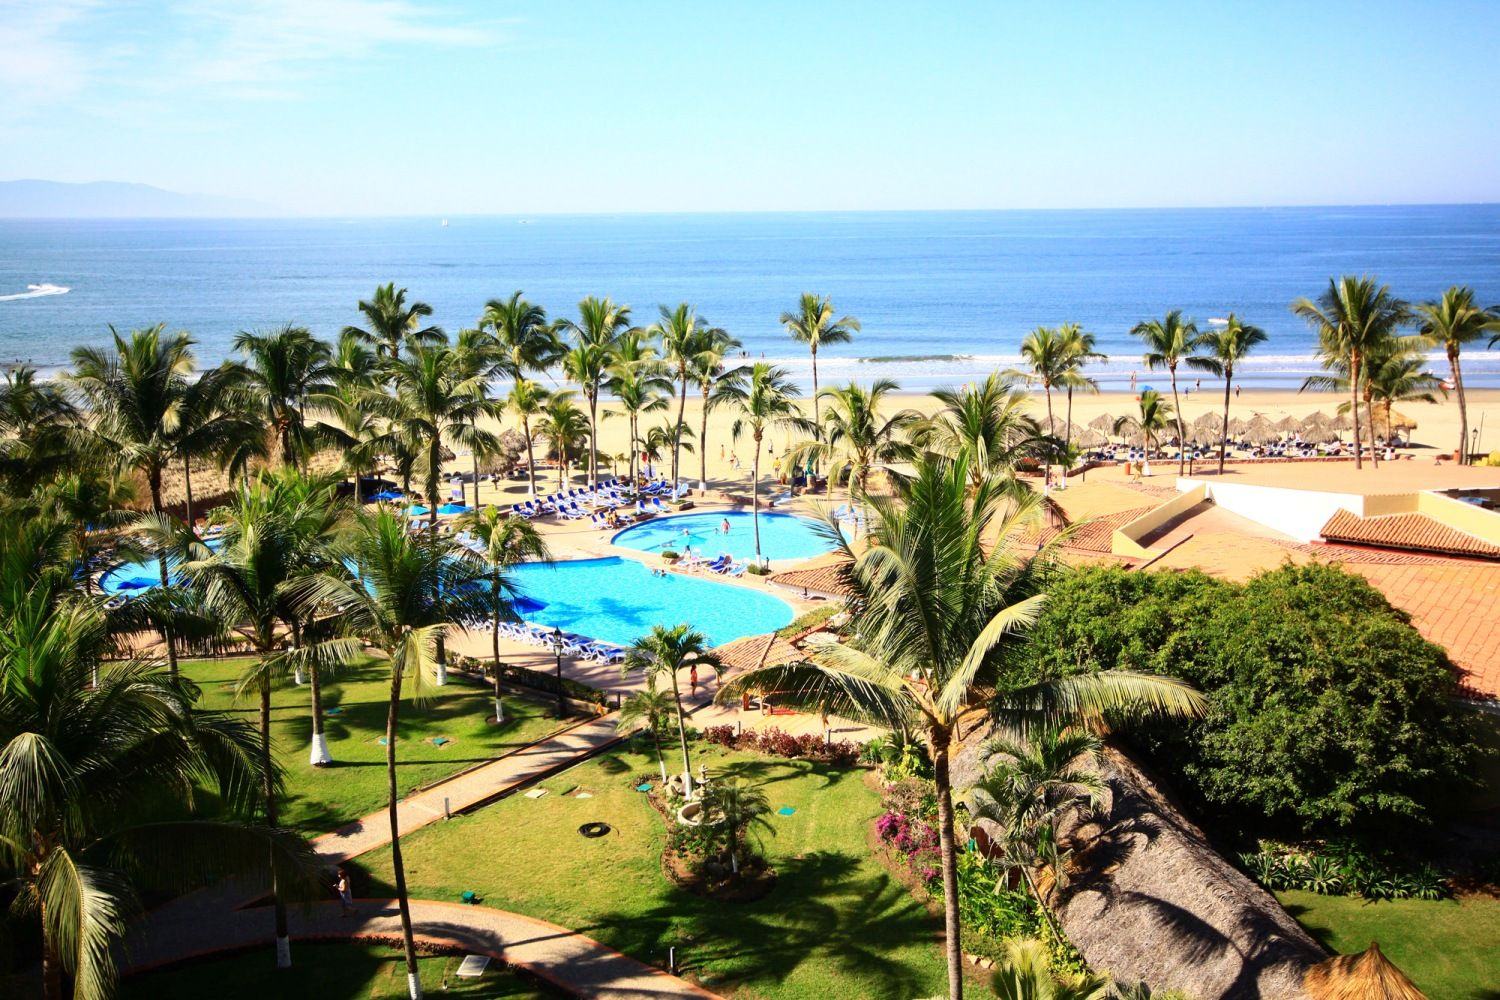 All inclusive occidental grand nuevo vallarta hotels resorts aerial puerto vallarta paradise